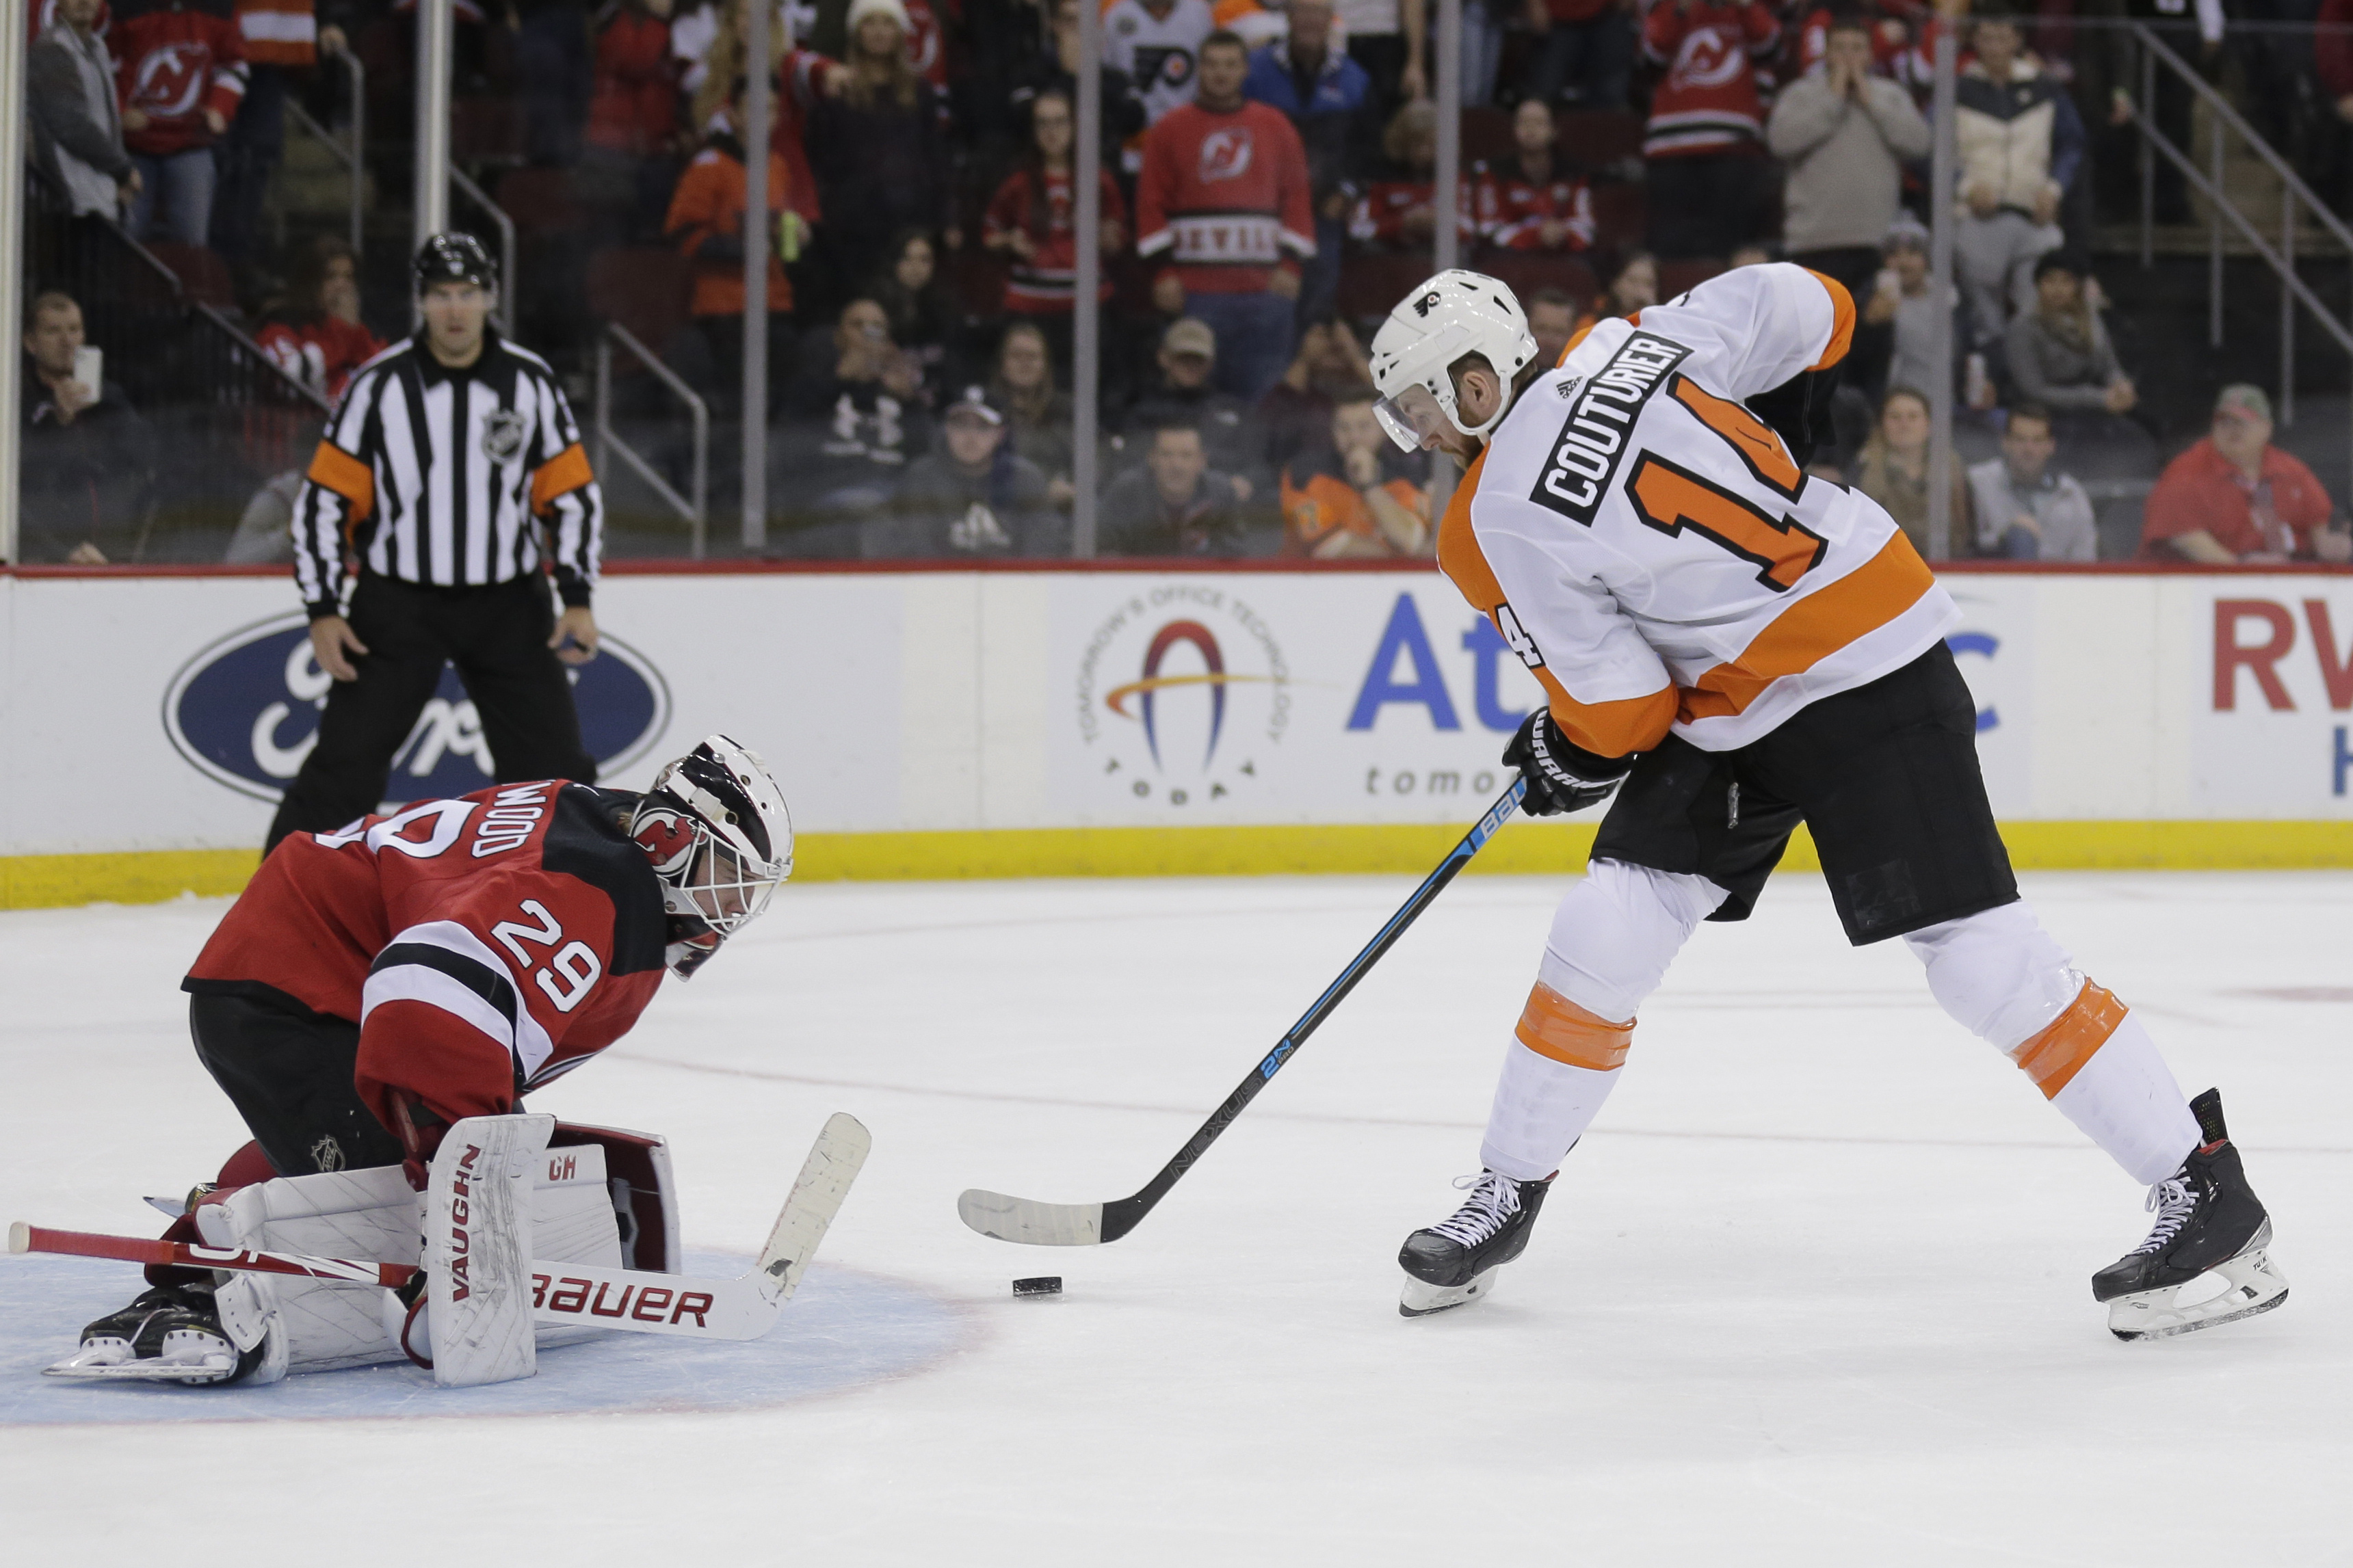 Couturier leads Flyers to 4-3 shootout win over Devils